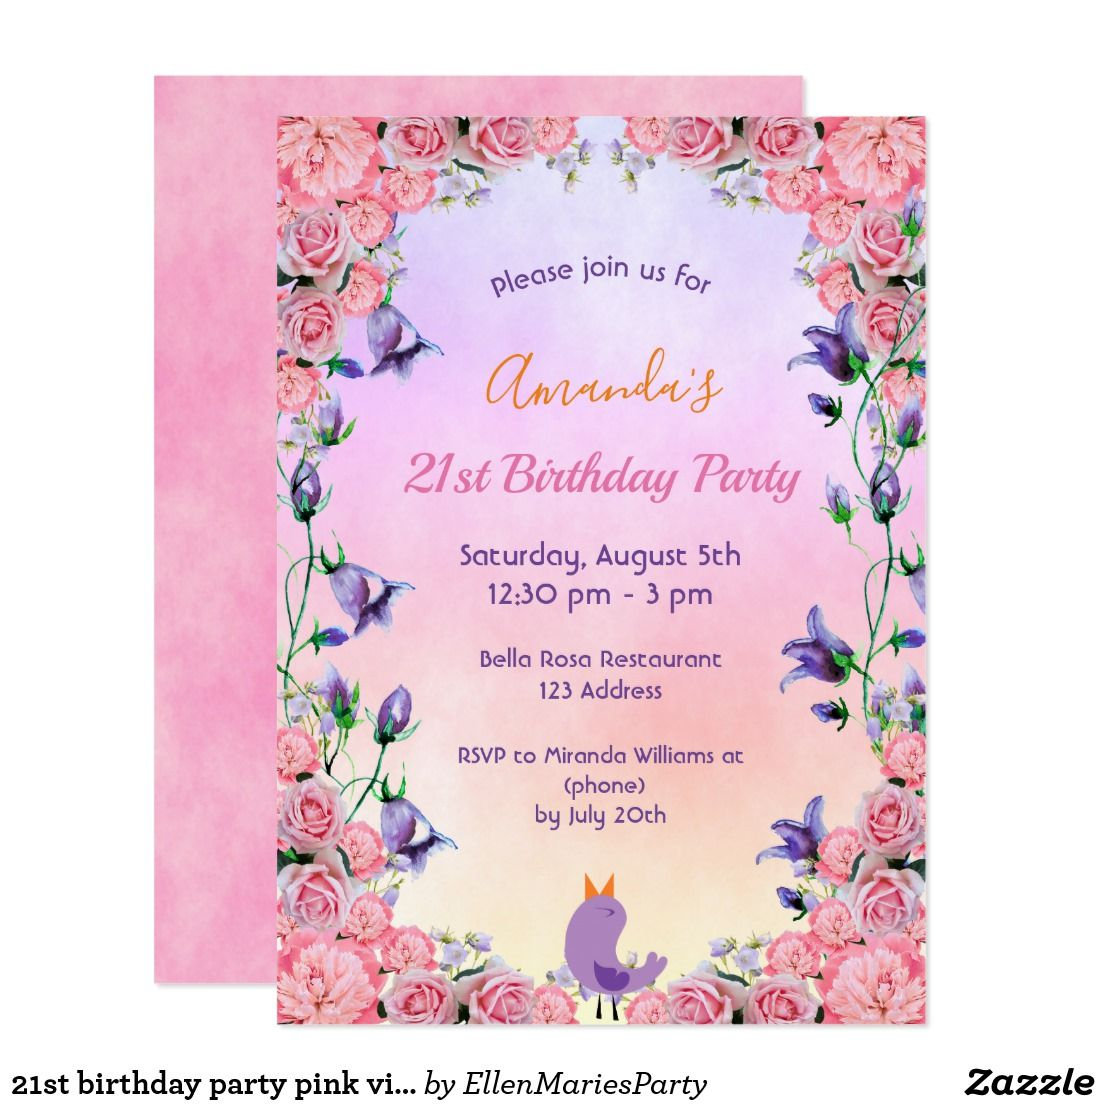 Invitations Bridal Shower or 21st Birthday Party Supplies and Decorations